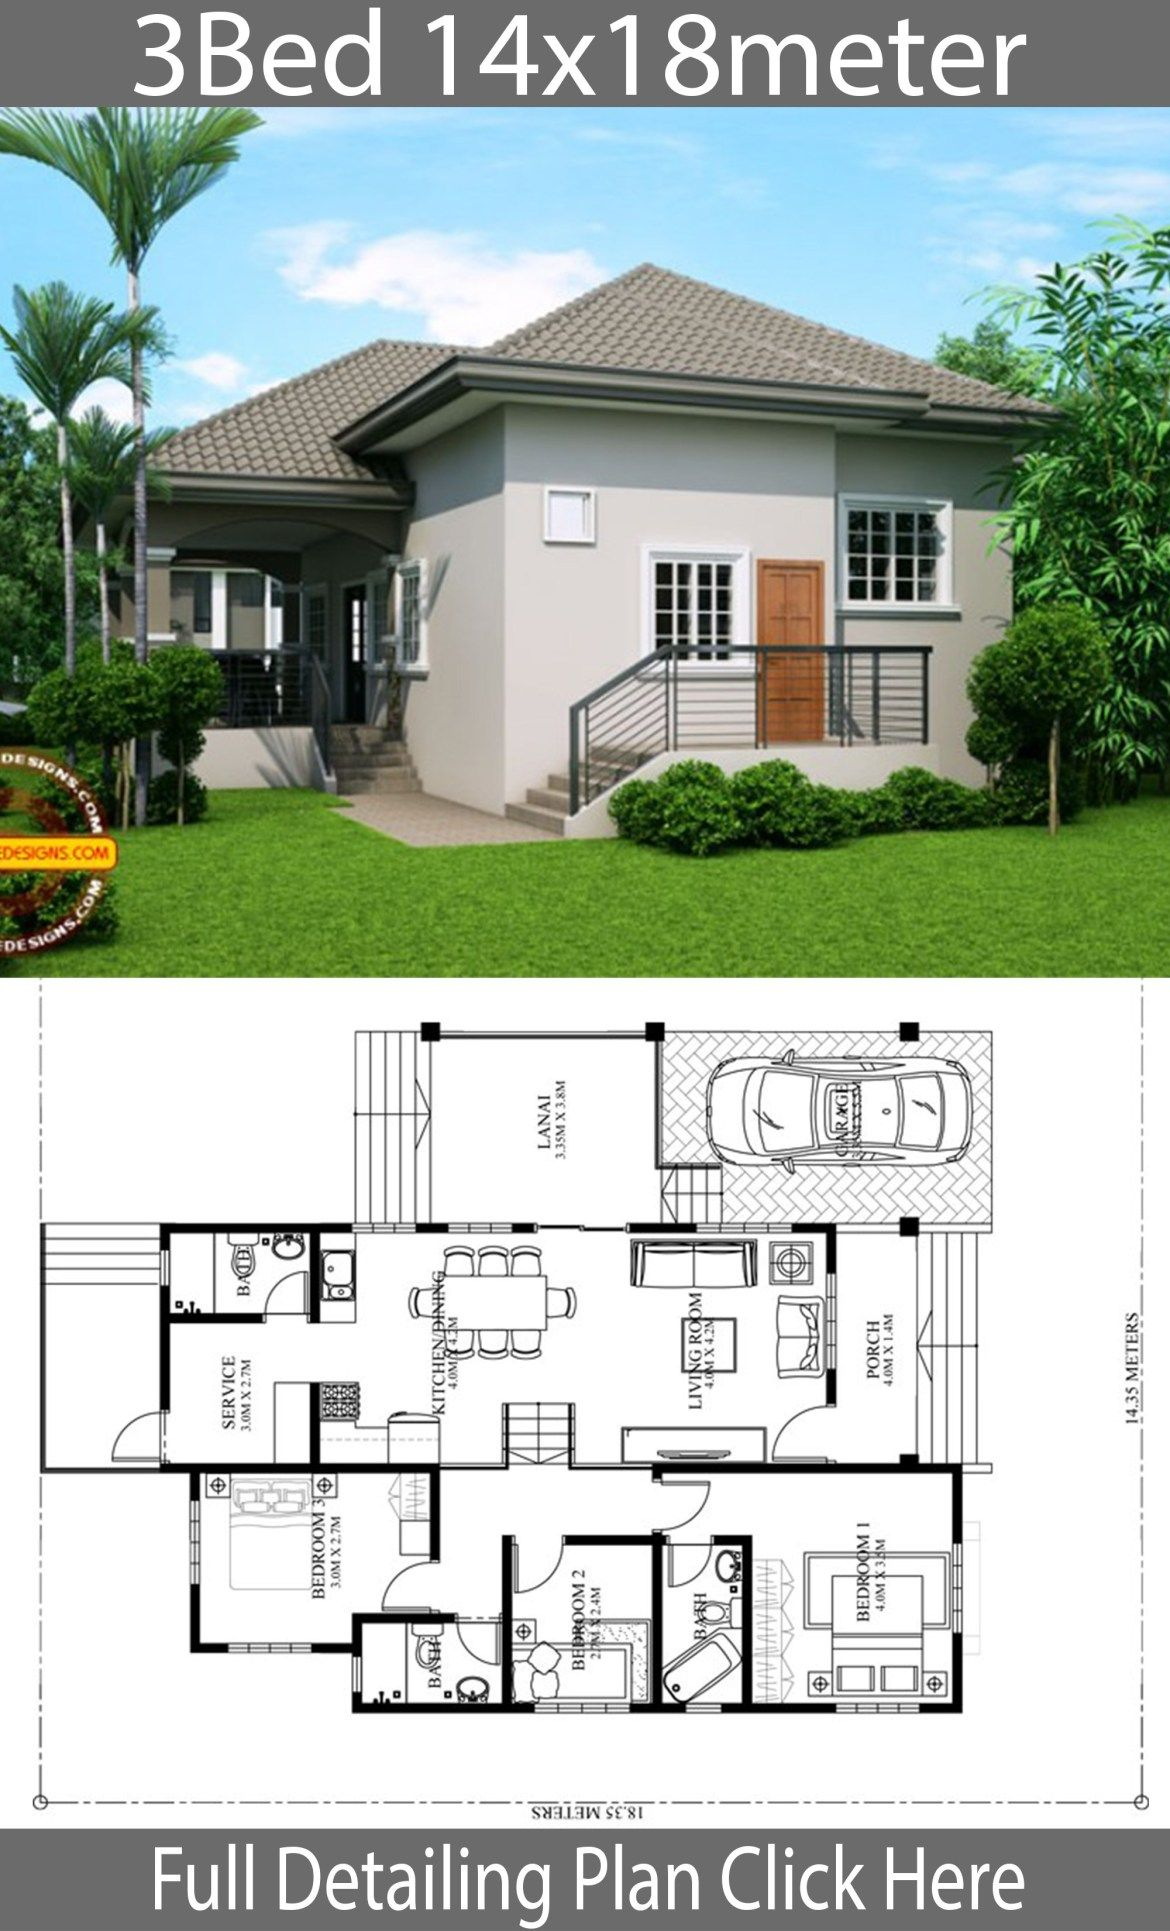 Home design plan 14x18m with 3 Bedrooms (With images